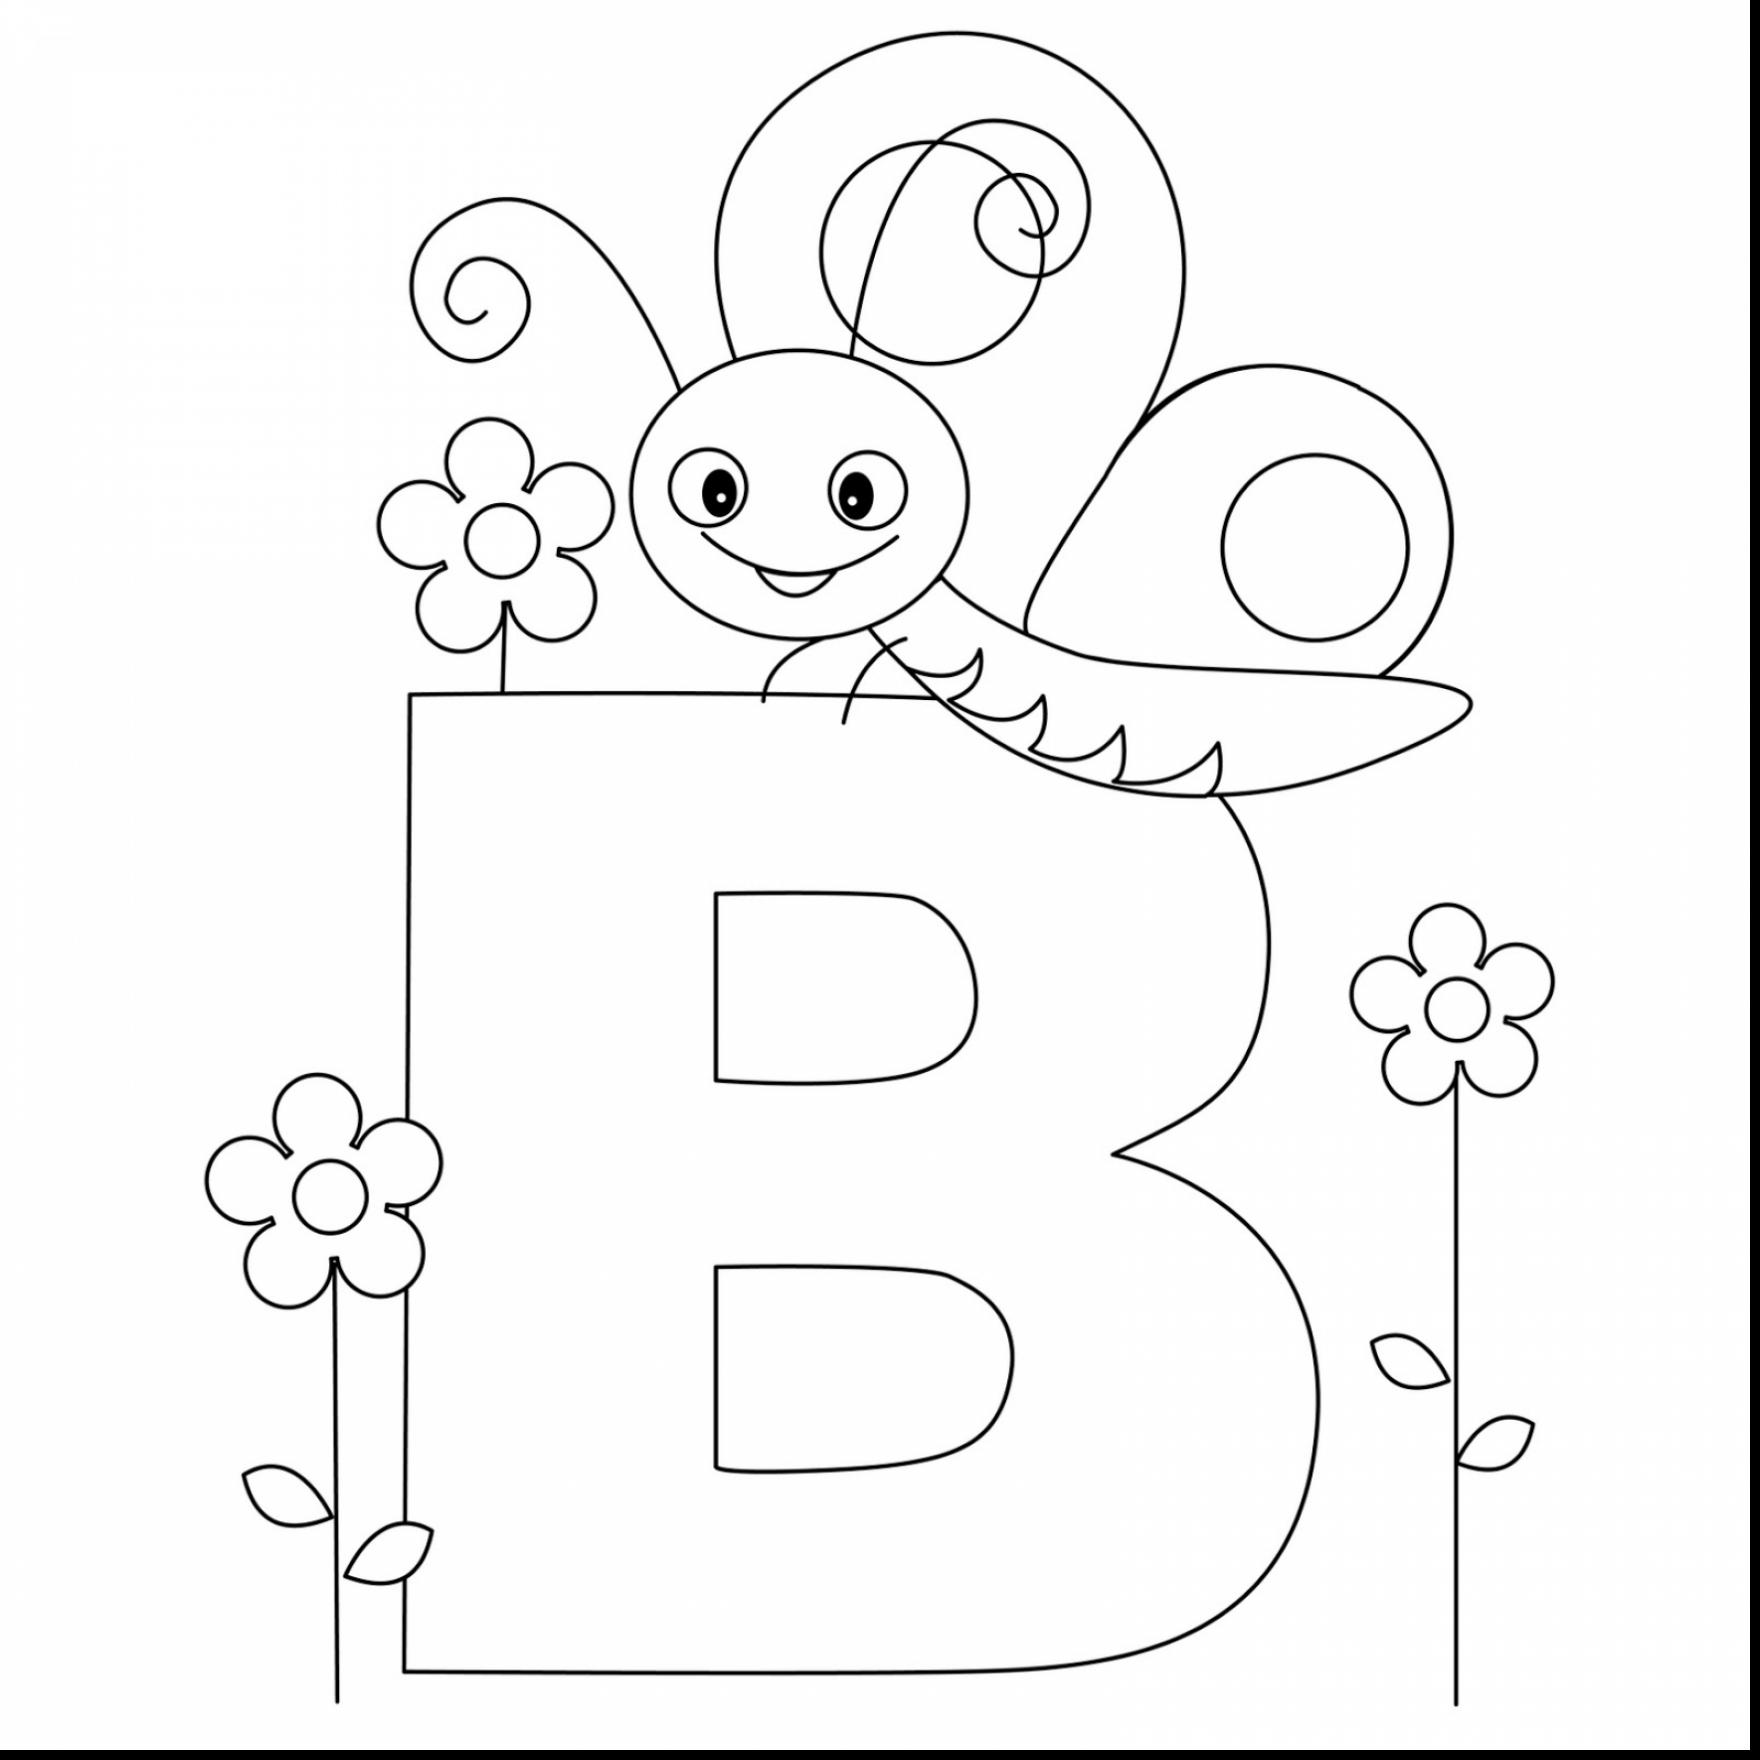 coloring printable alphabet a z alphabet coloring pages download and print for free alphabet printable coloring